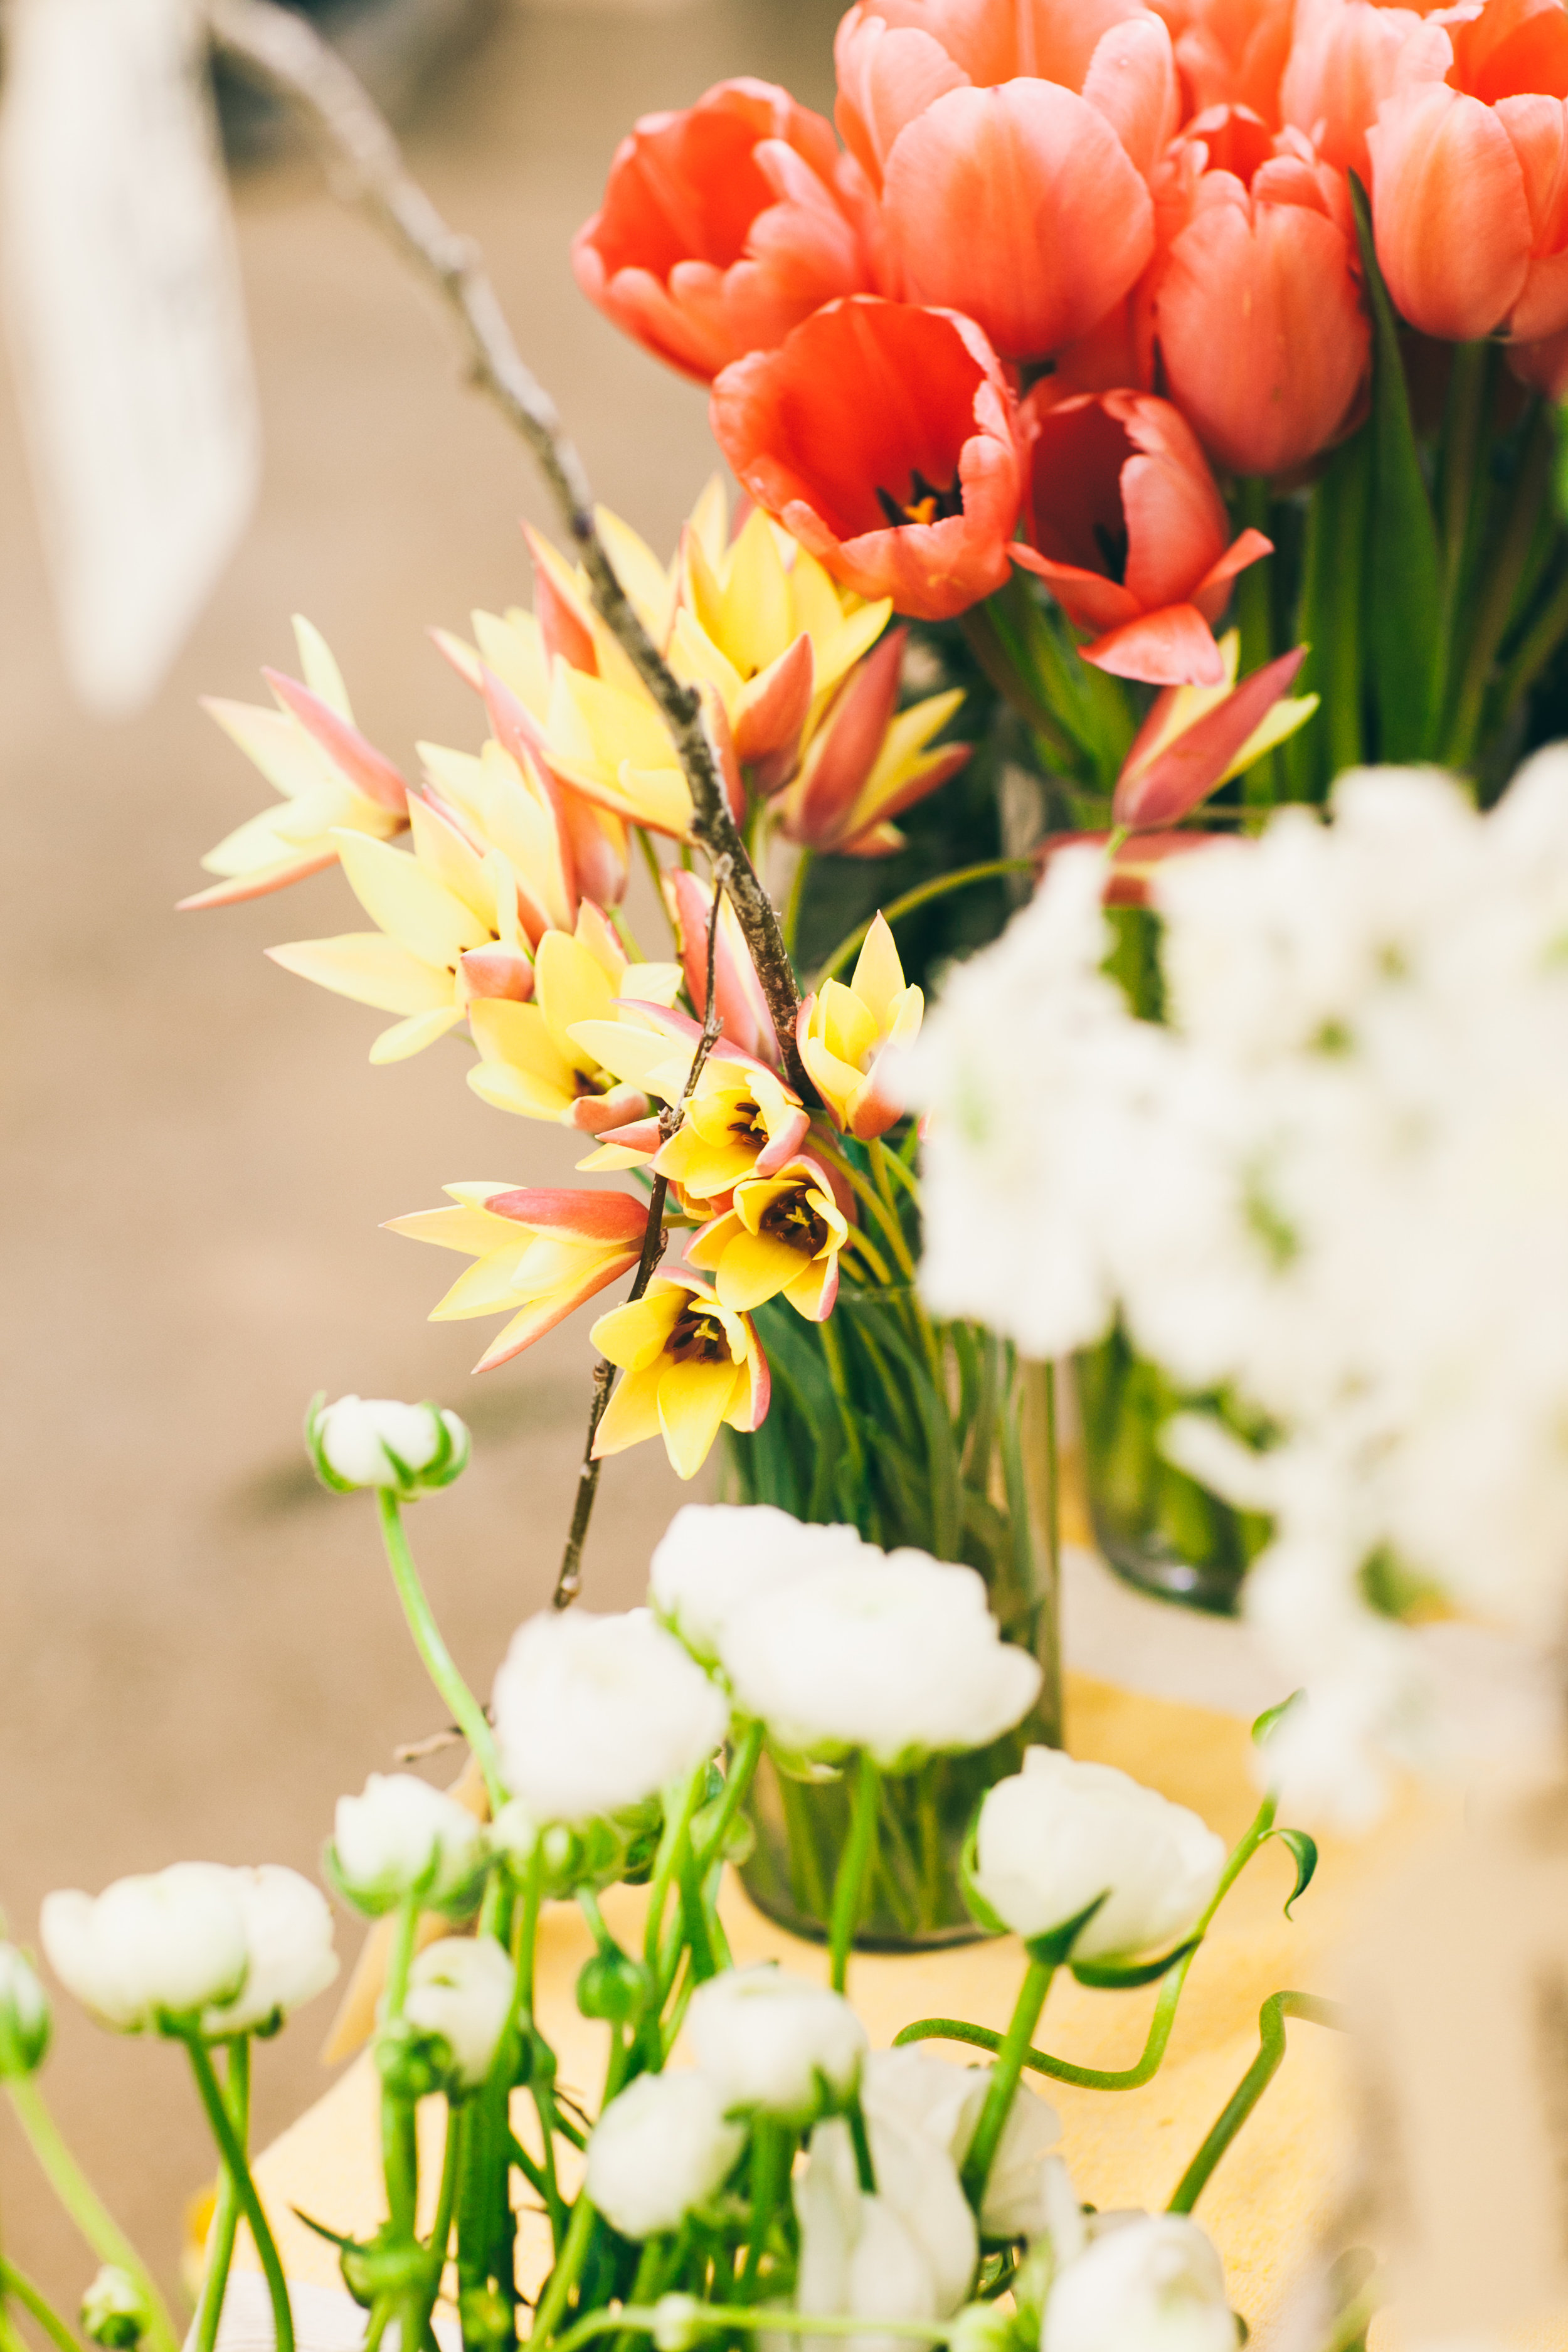 In defense of flowers... - I've noticed this year a bit of an underwhelmed attitude when clients come to me to commission flowers for events. I get the feeling some people view flowers as an obligatory accessory. Or perhaps people feel weird about spending on a luxury when money is tight.